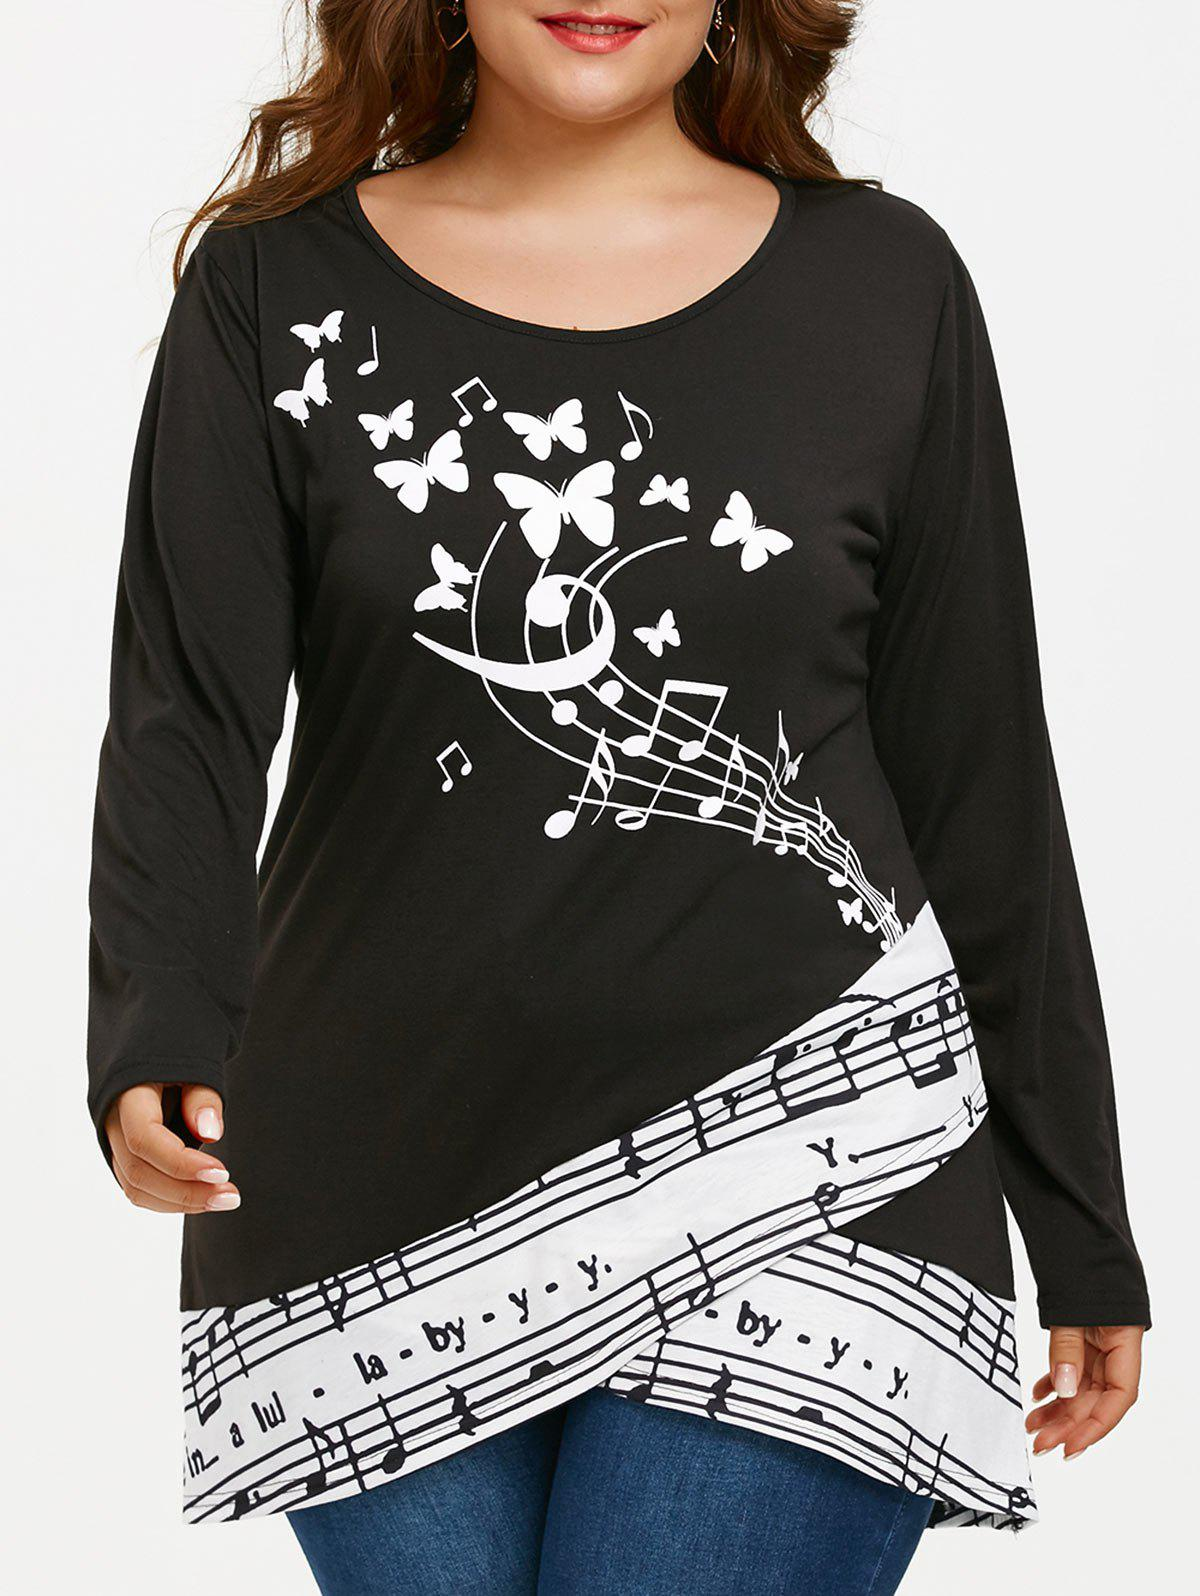 Shop Musical Notes Butterfly Print Plus Size T-shirt